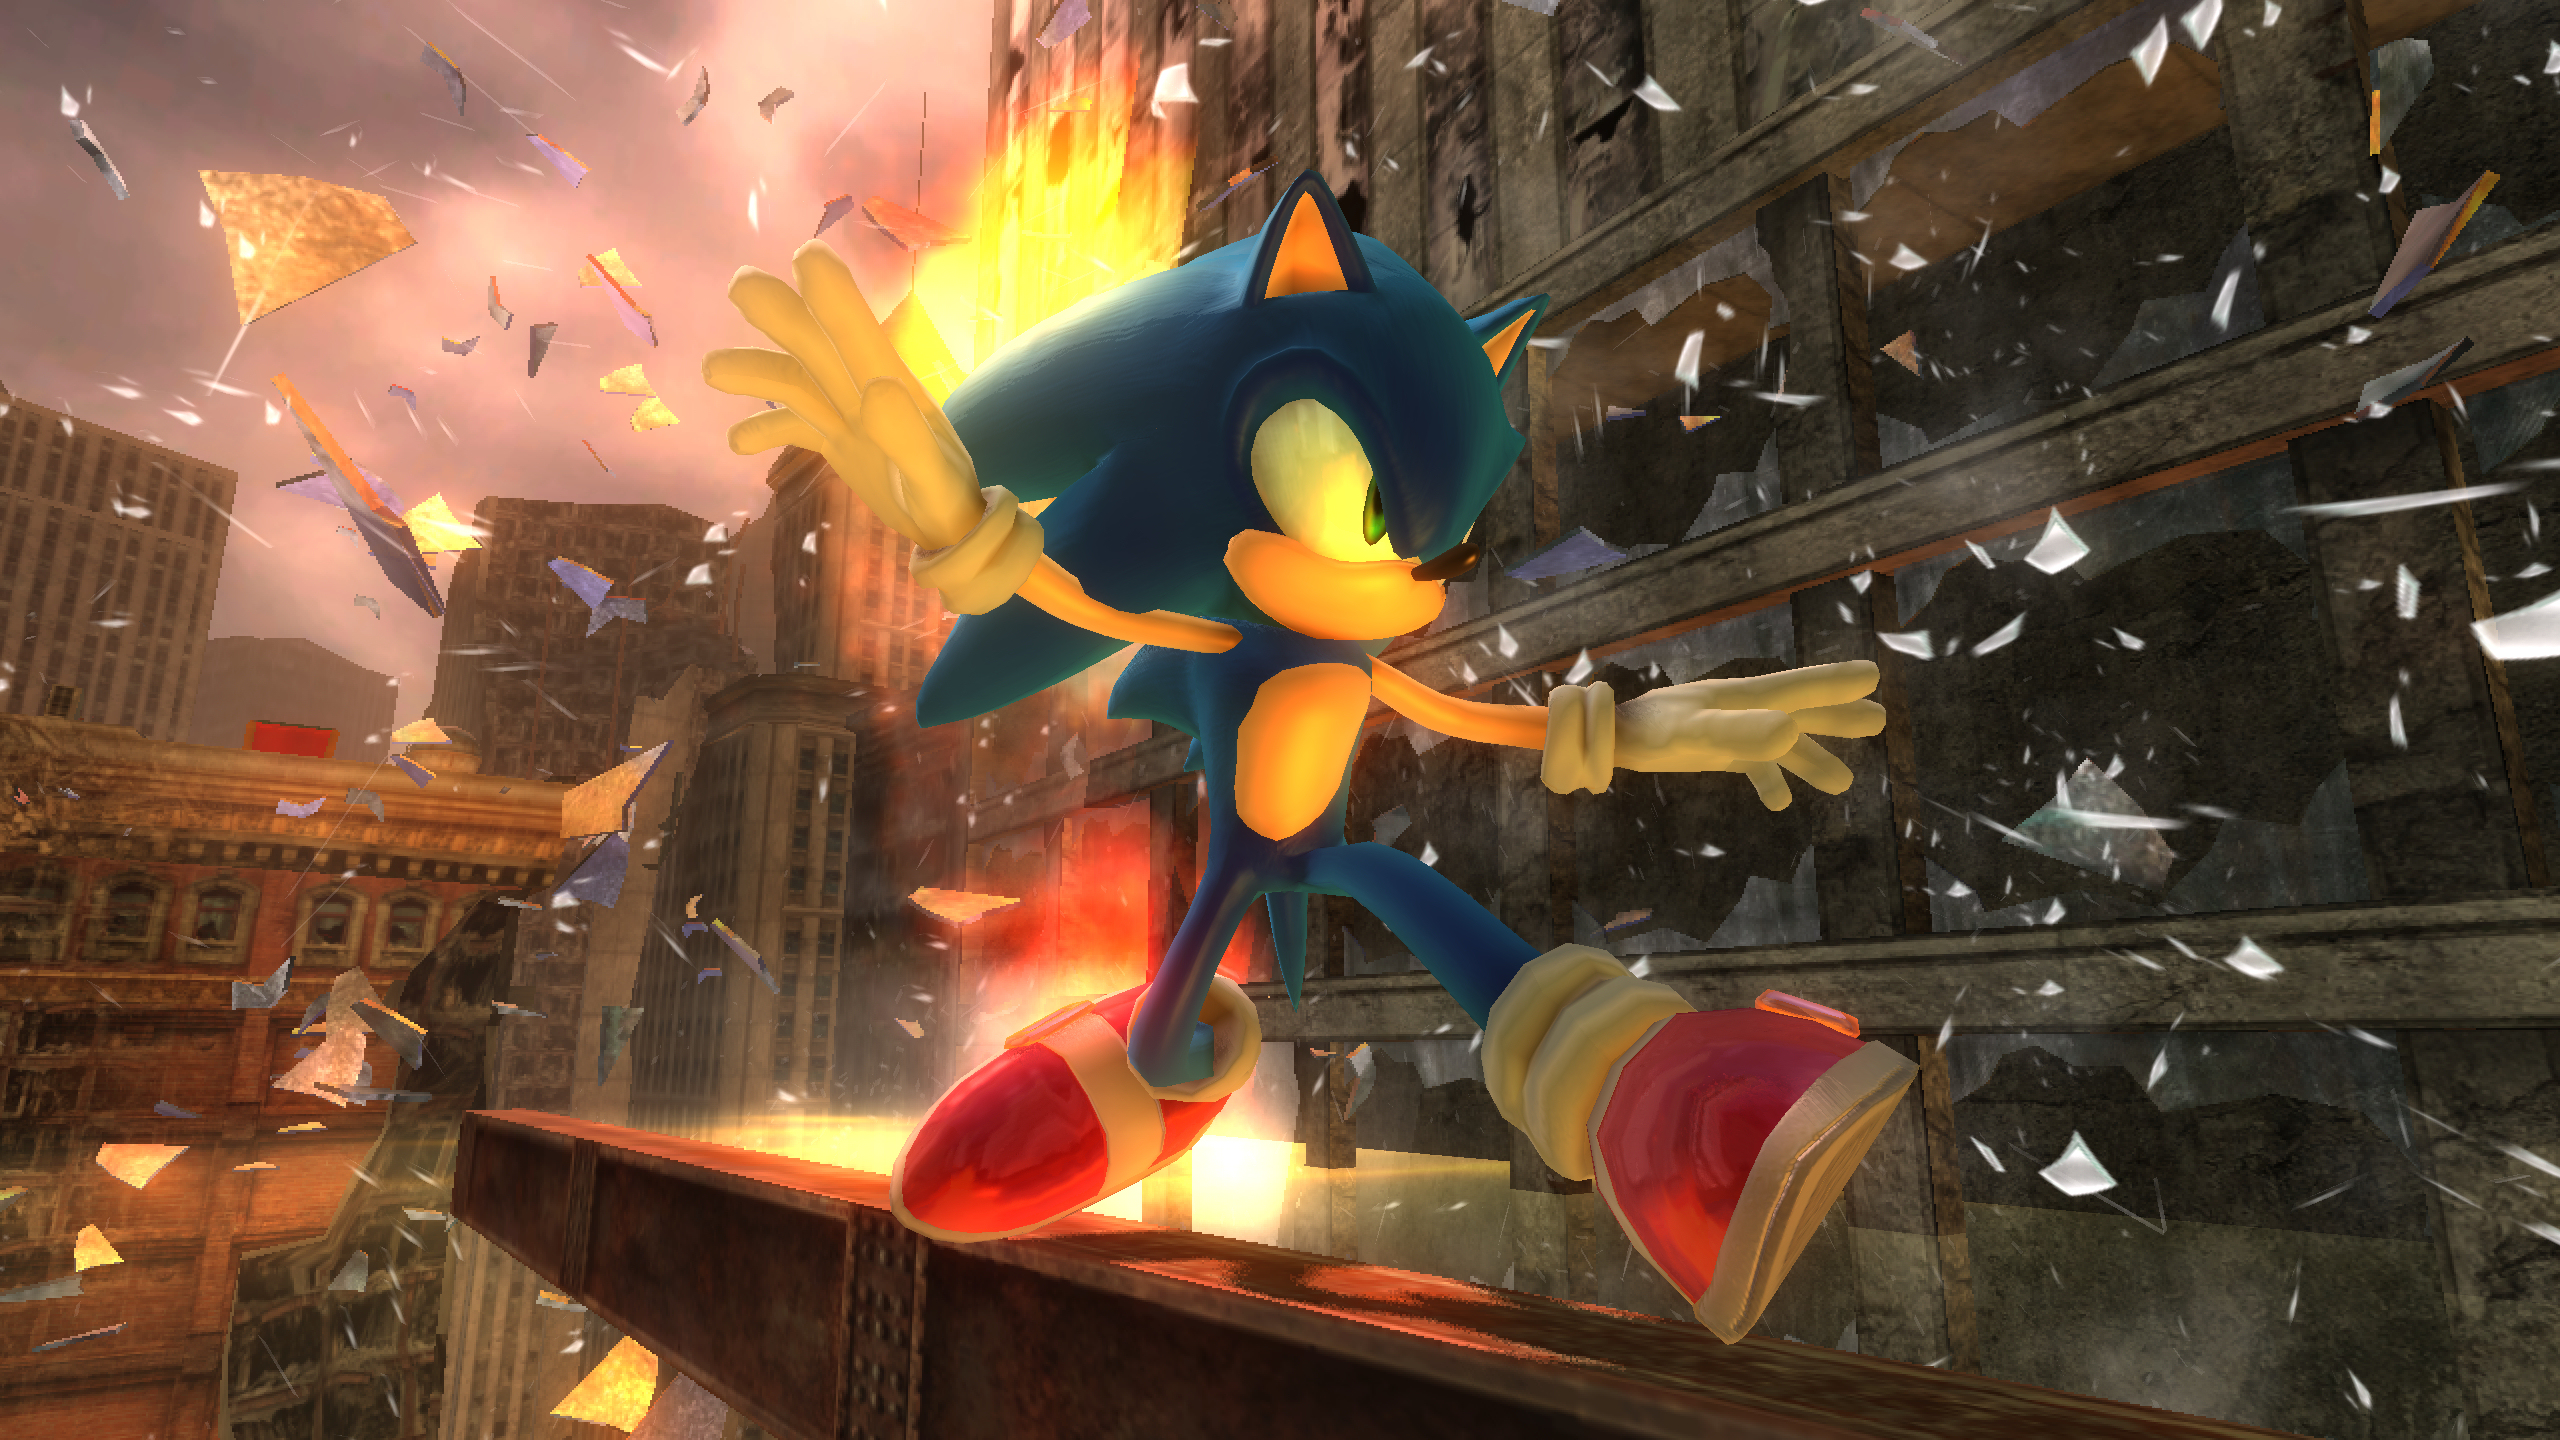 File:Sonic06screen47.jpg